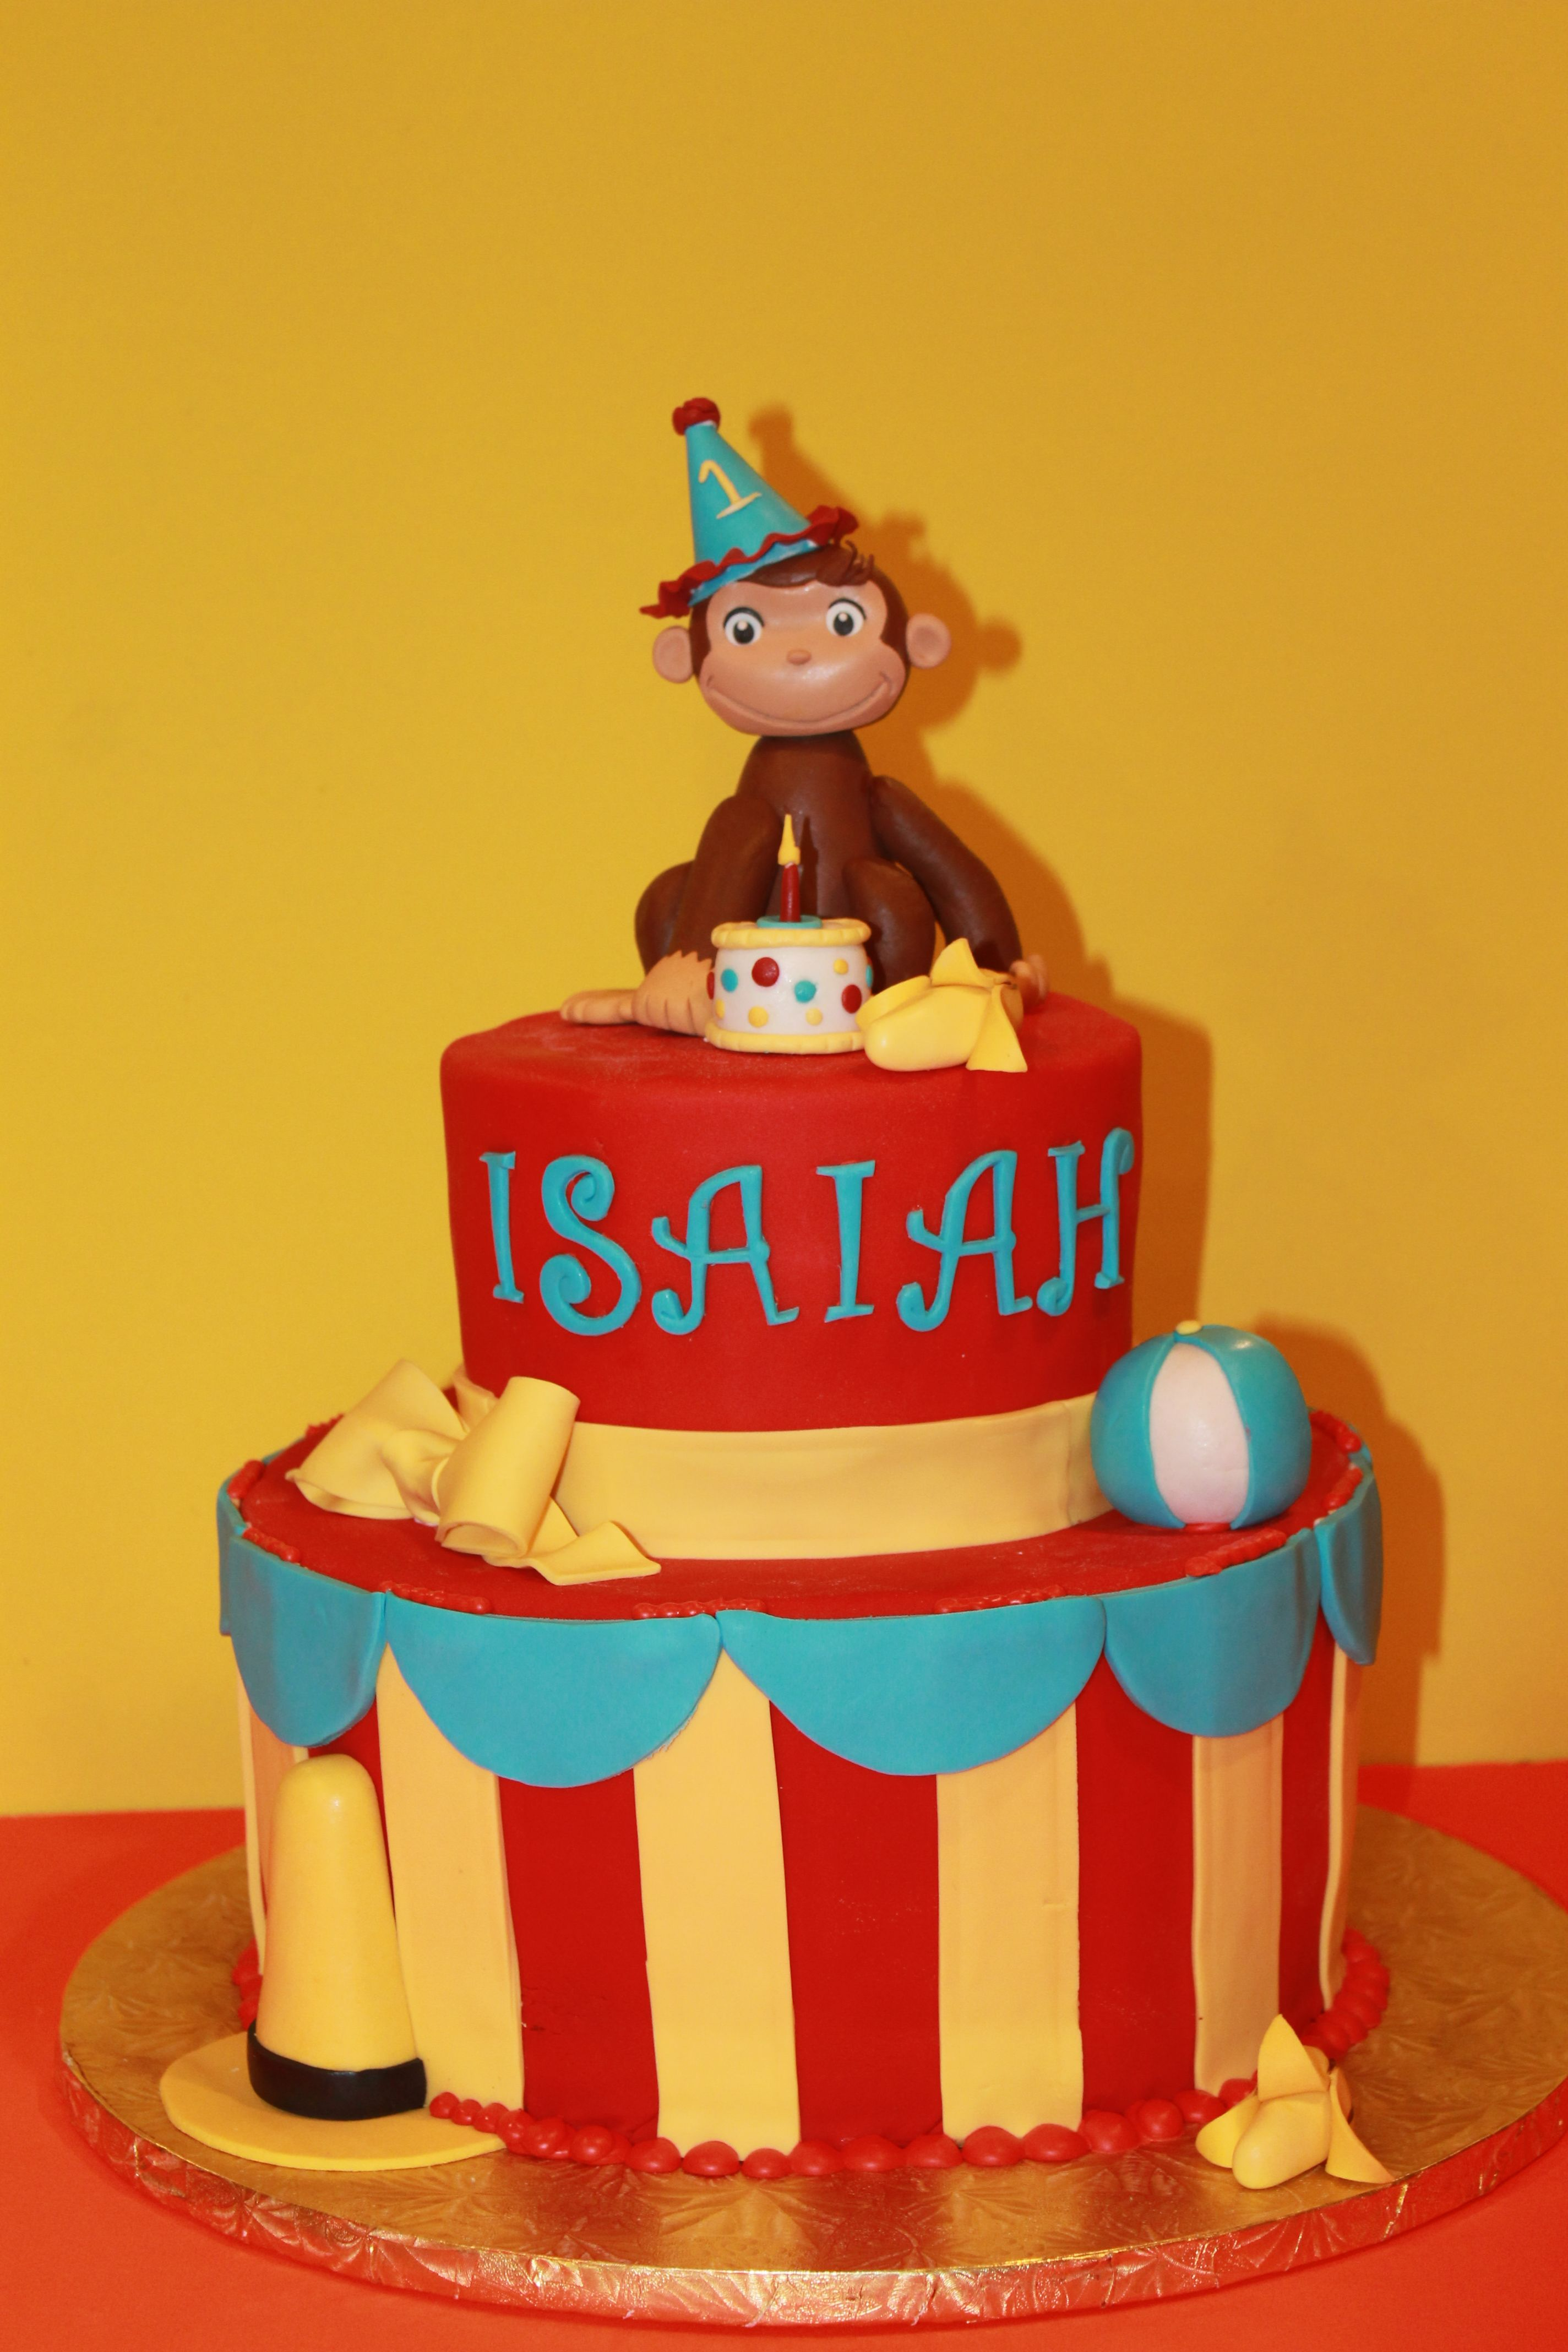 Edible Cake Images Curious George : Curious George Cake. Little George is hand sculpted and ...